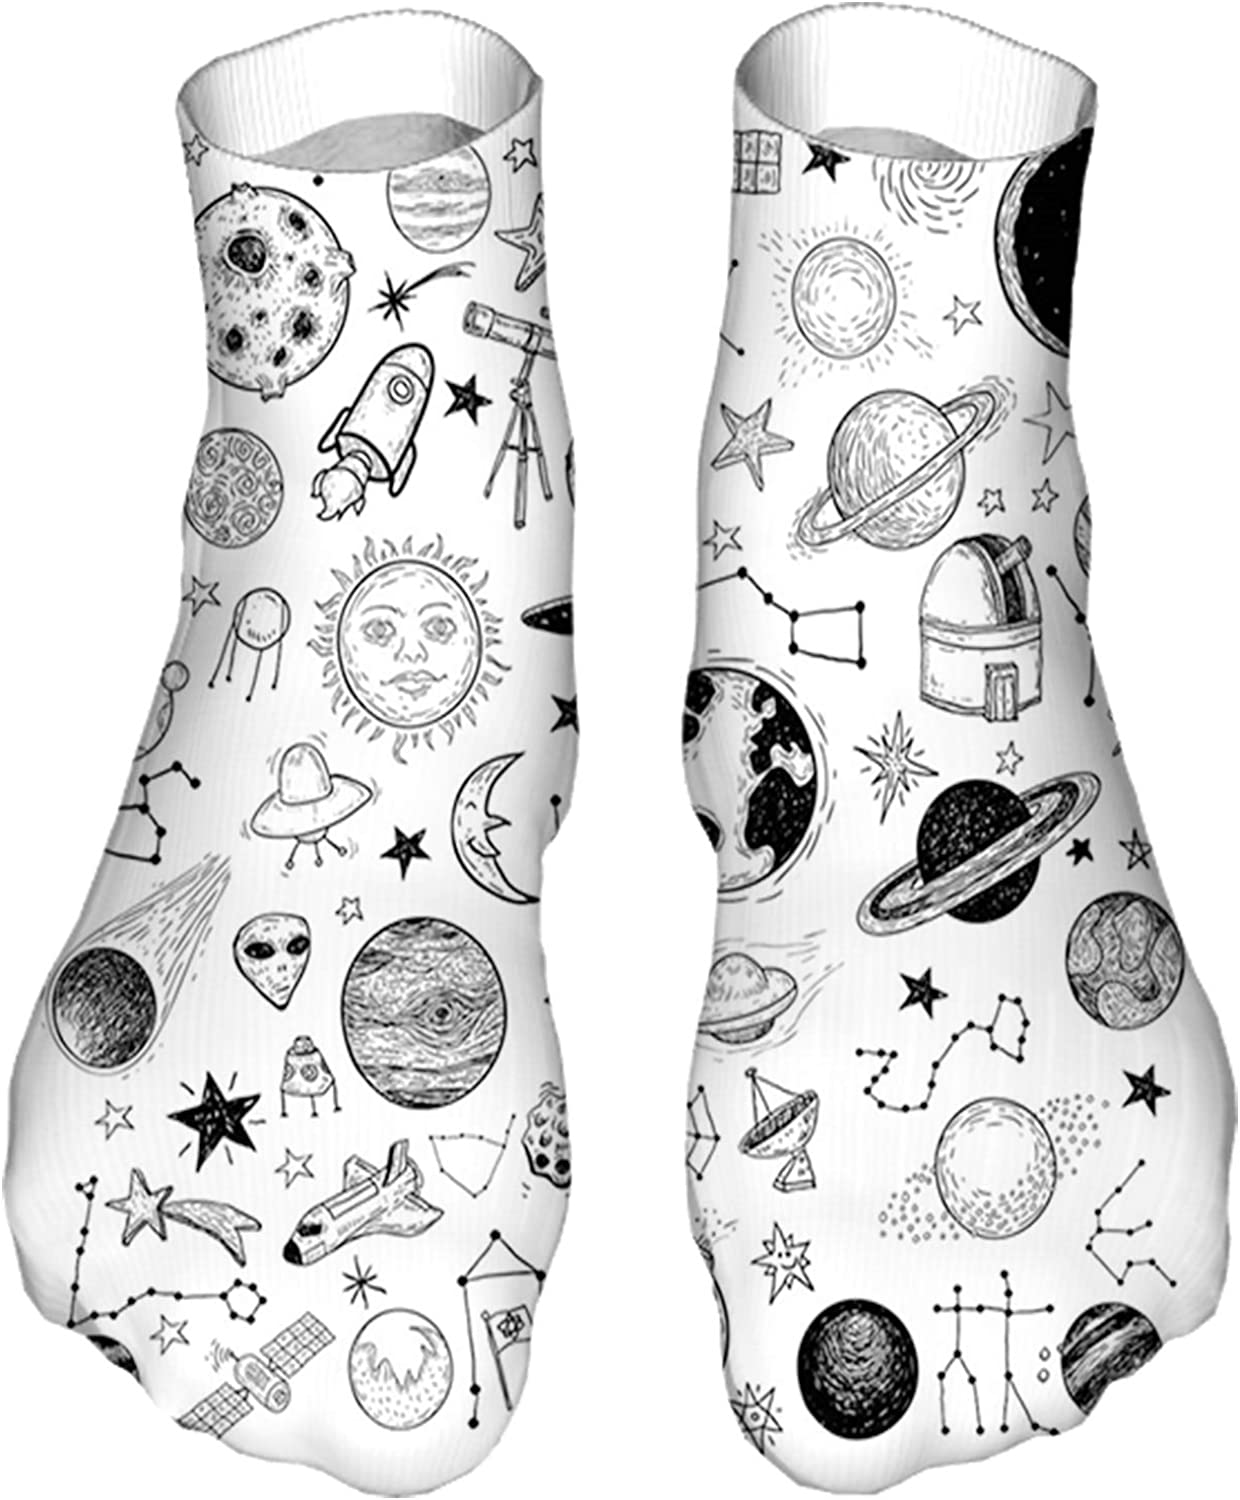 Men's and Women's Fun Socks Printed Cool Novelty Funny Socks,Hand Drawn Planets Asteroids Constellations Monochrome